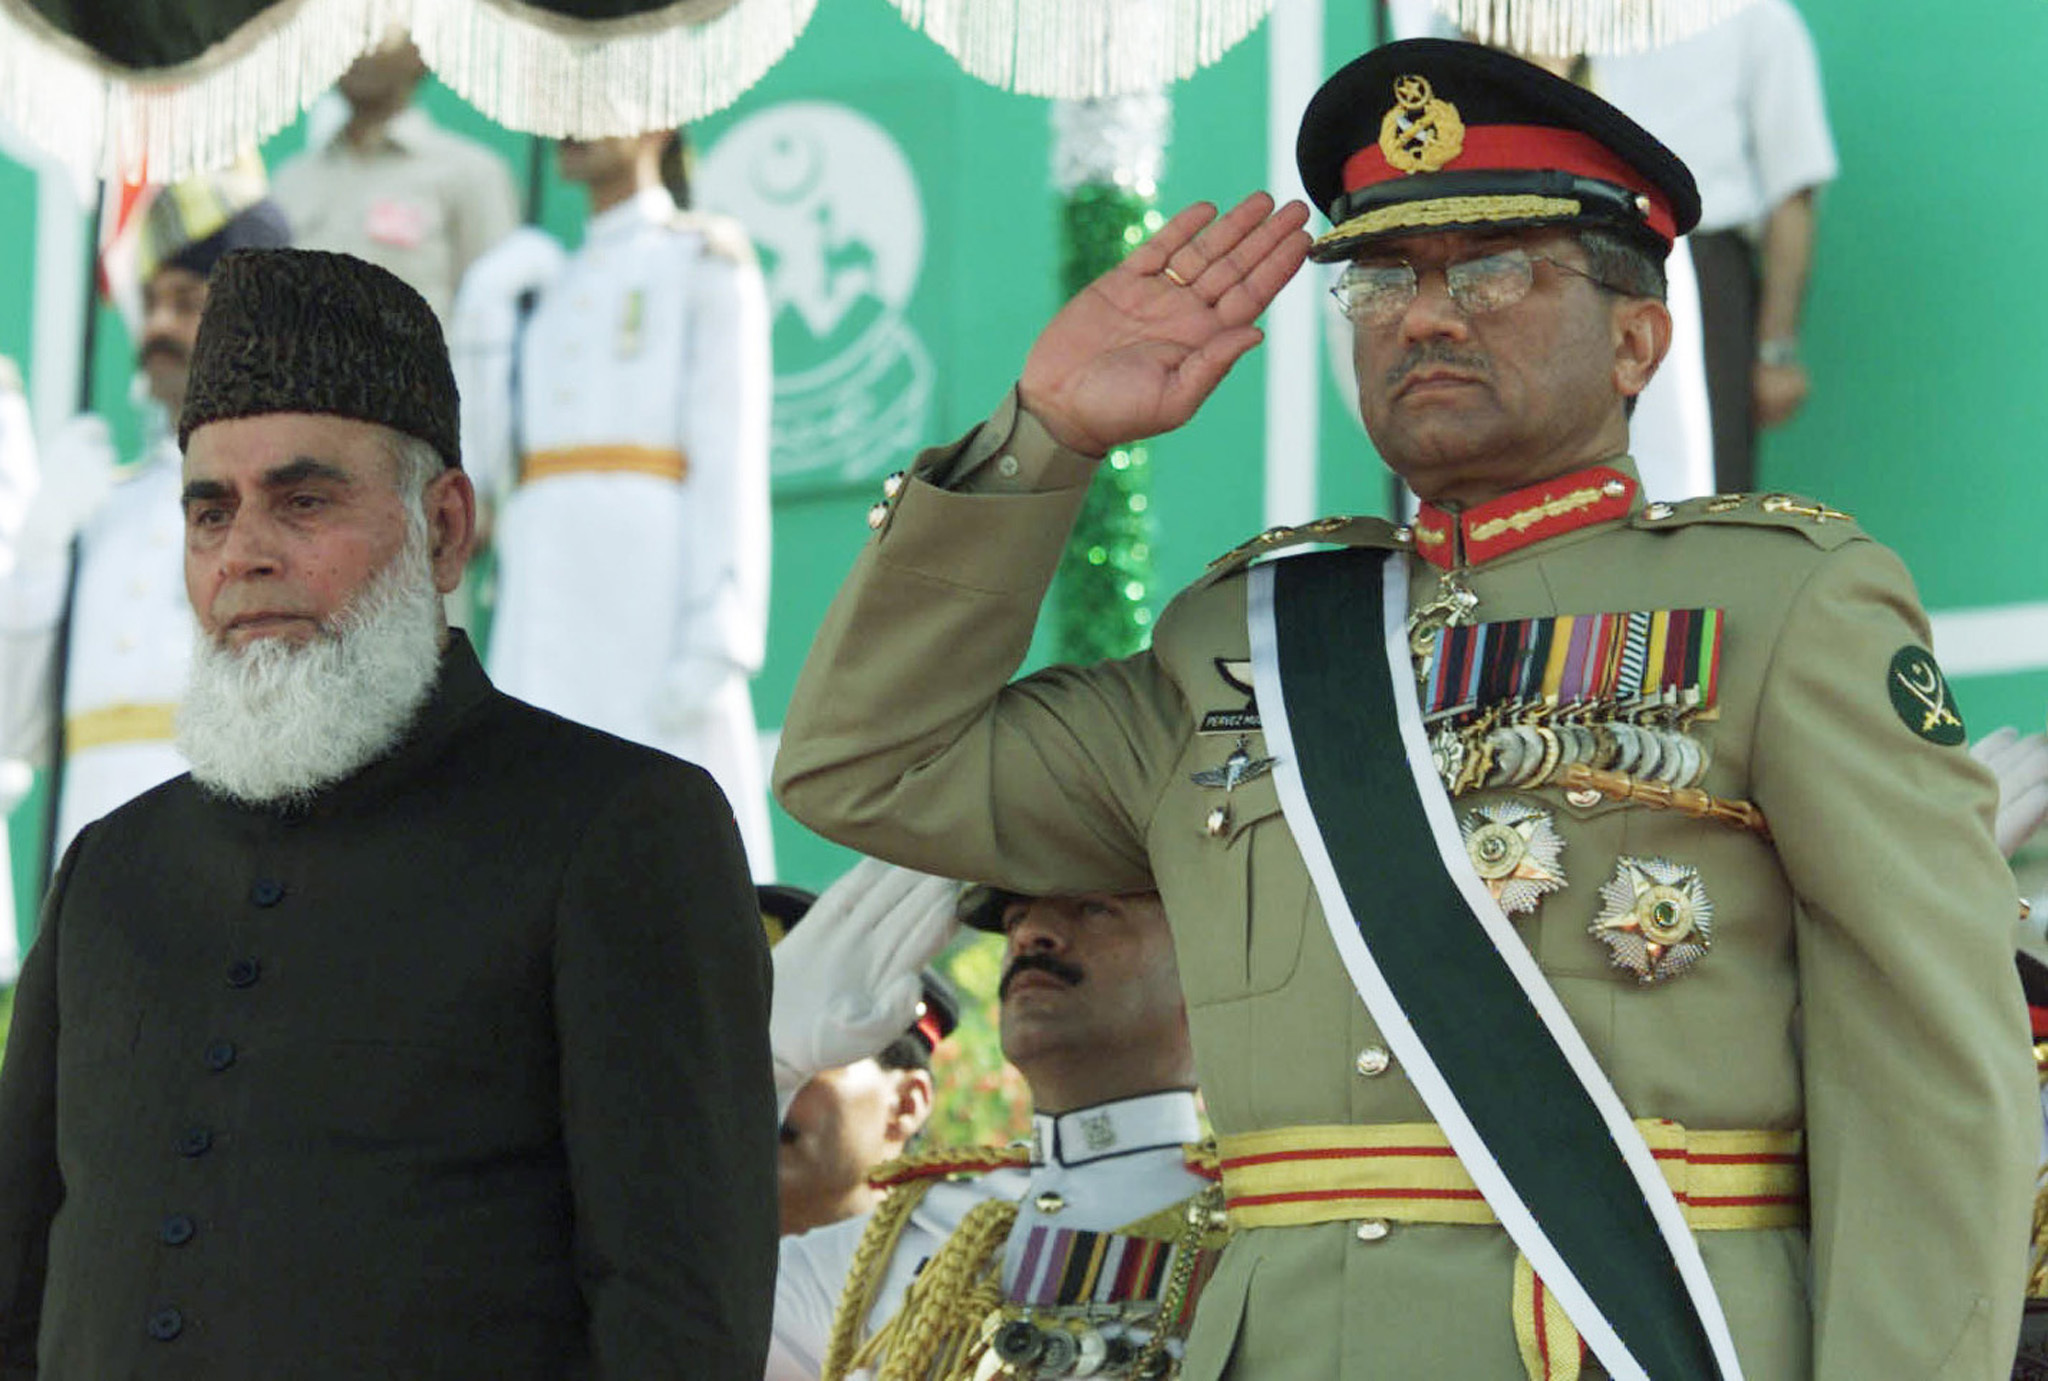 President Mohammad Rafiq Tarar and military ruler General Pervez Musharraf attend the Independence Day ceremony on August 14, 2000. Tarar was later removed from office, clearing the way for the swearing in of Musharraf on June 20, 2001. — Reuters